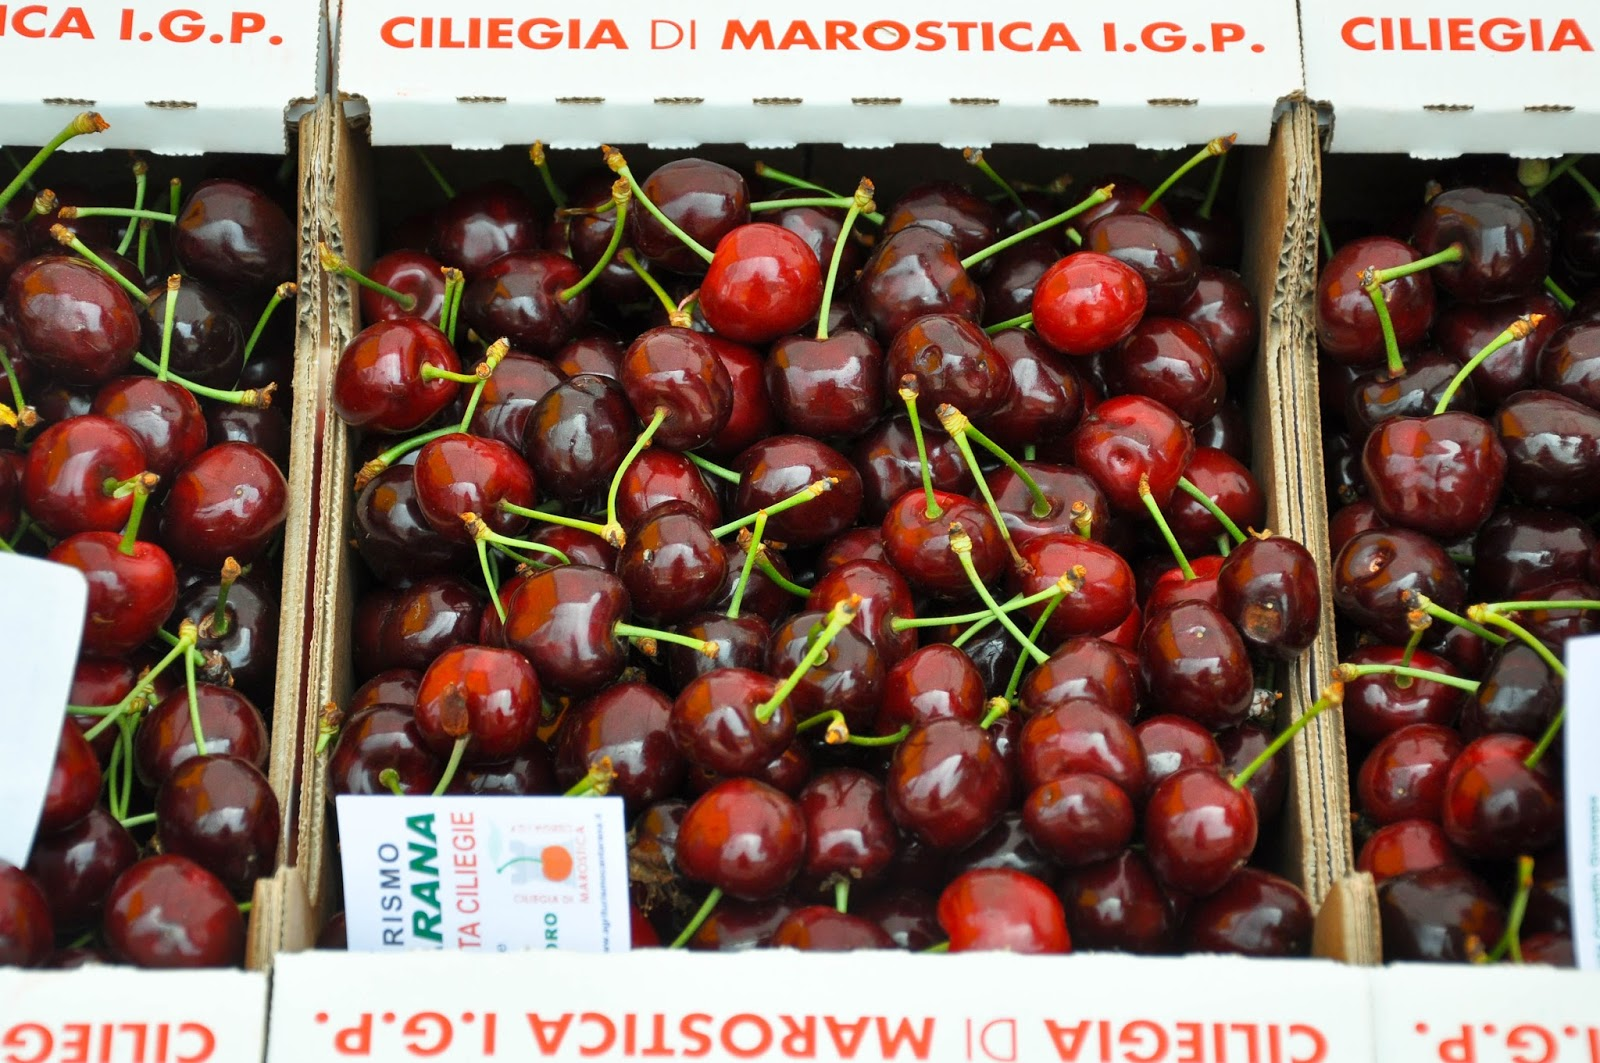 Cherries from Marostica at the Cherry Show Market in Marostica, Veneto, Italy